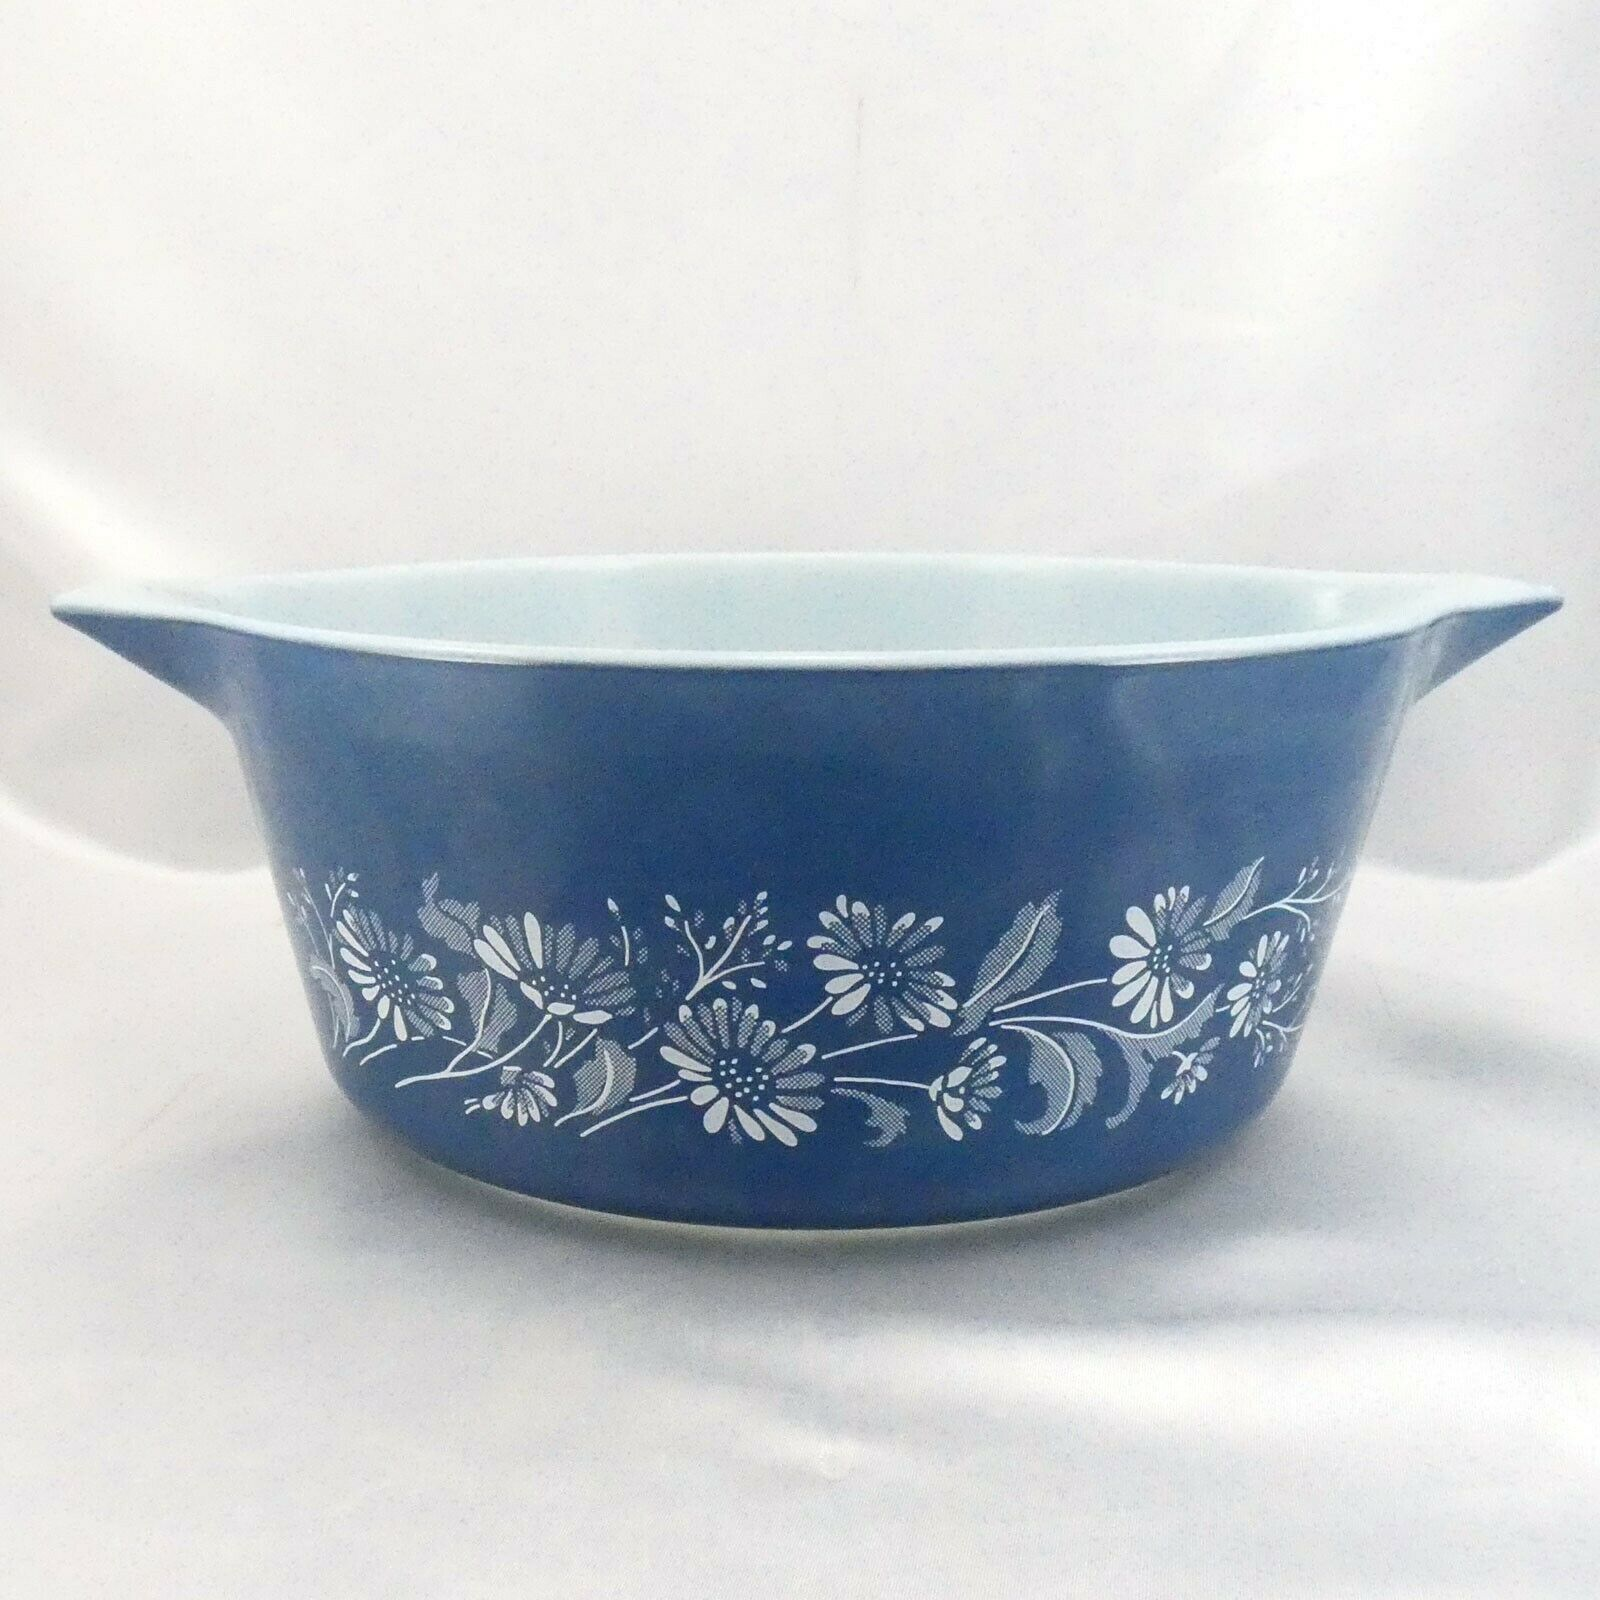 Pyrex 475 Colonial Mist Serving Bowl 2.5qt Blue Daisy Casserole Dish Made in USA